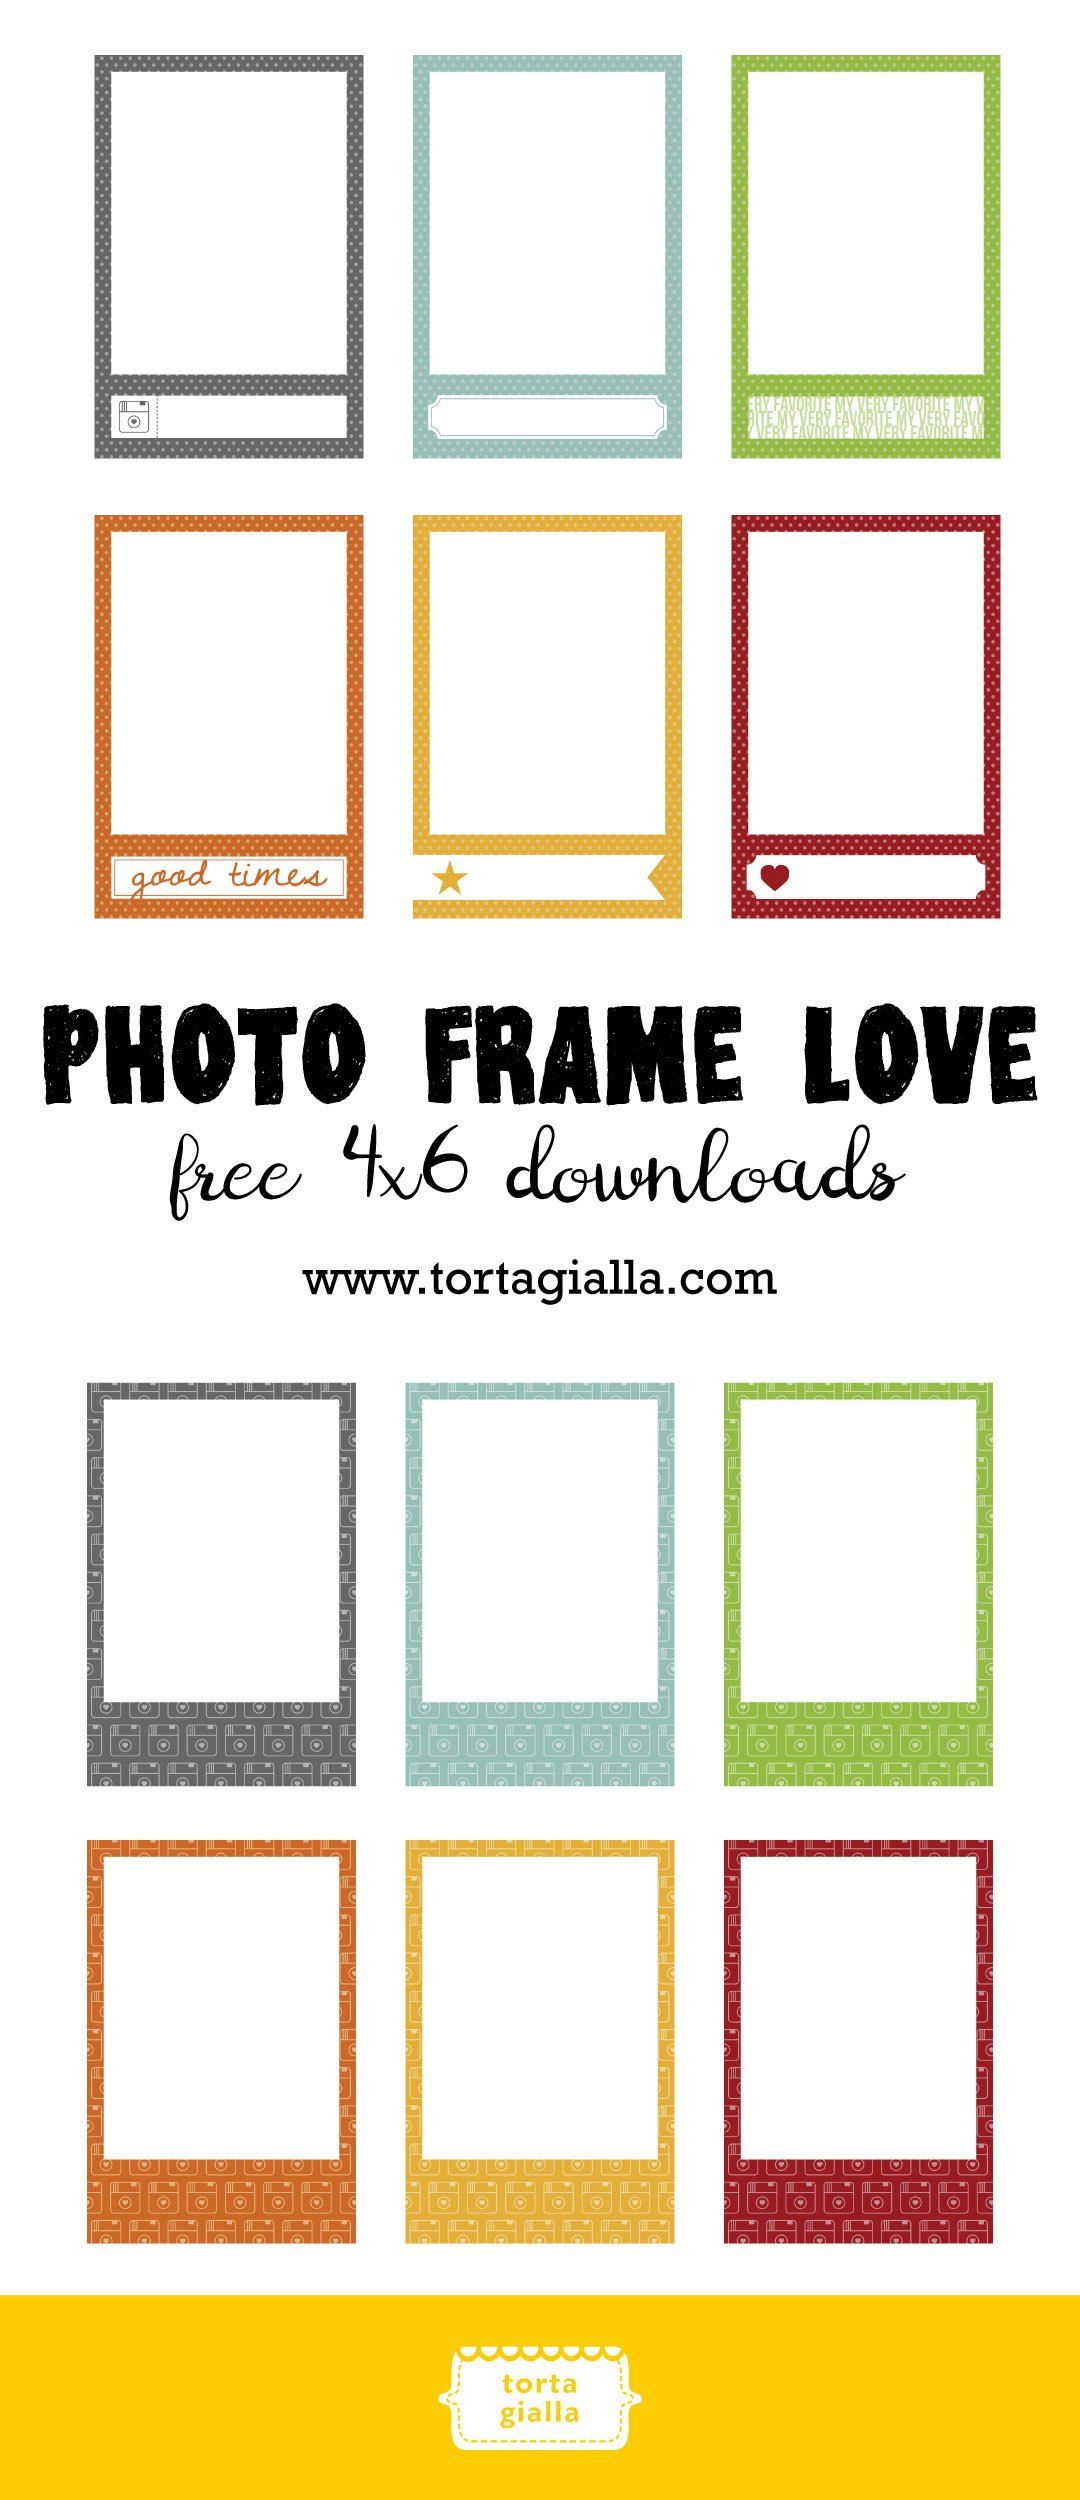 Free 4x6 Photo Frame Love Downloads Free Photo Frames Photo